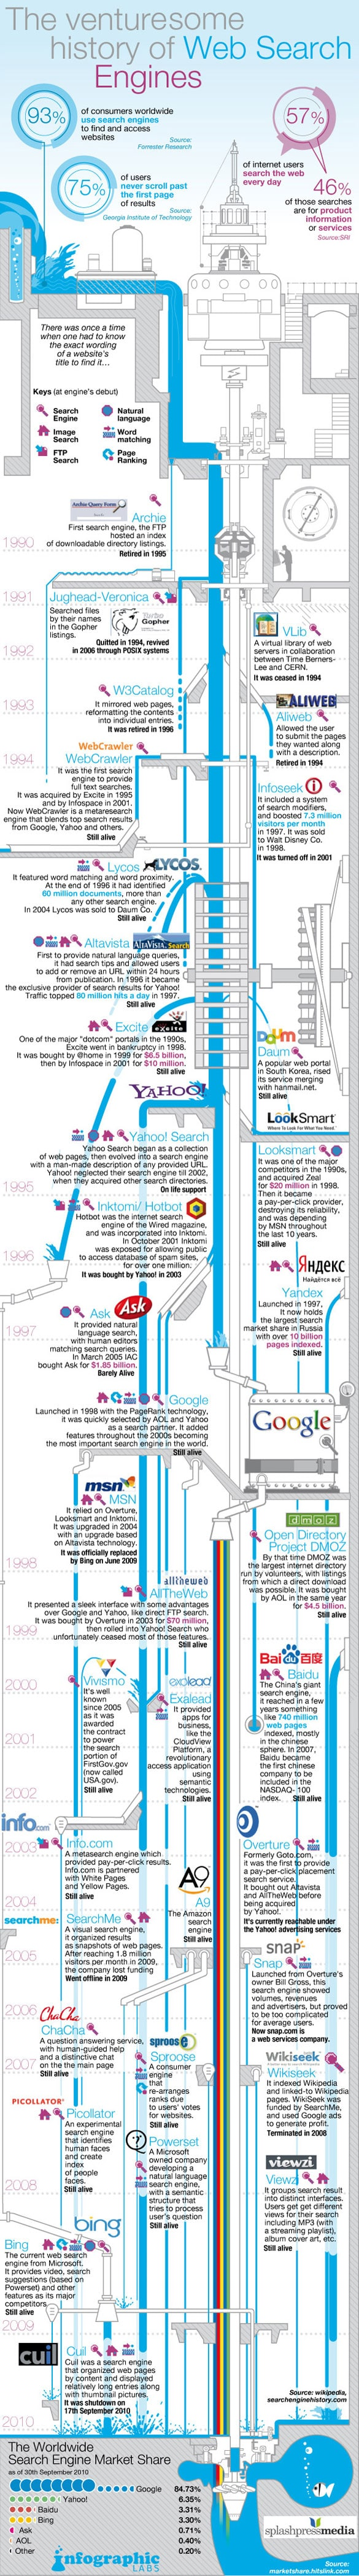 Search Engine History Timeline Infographic